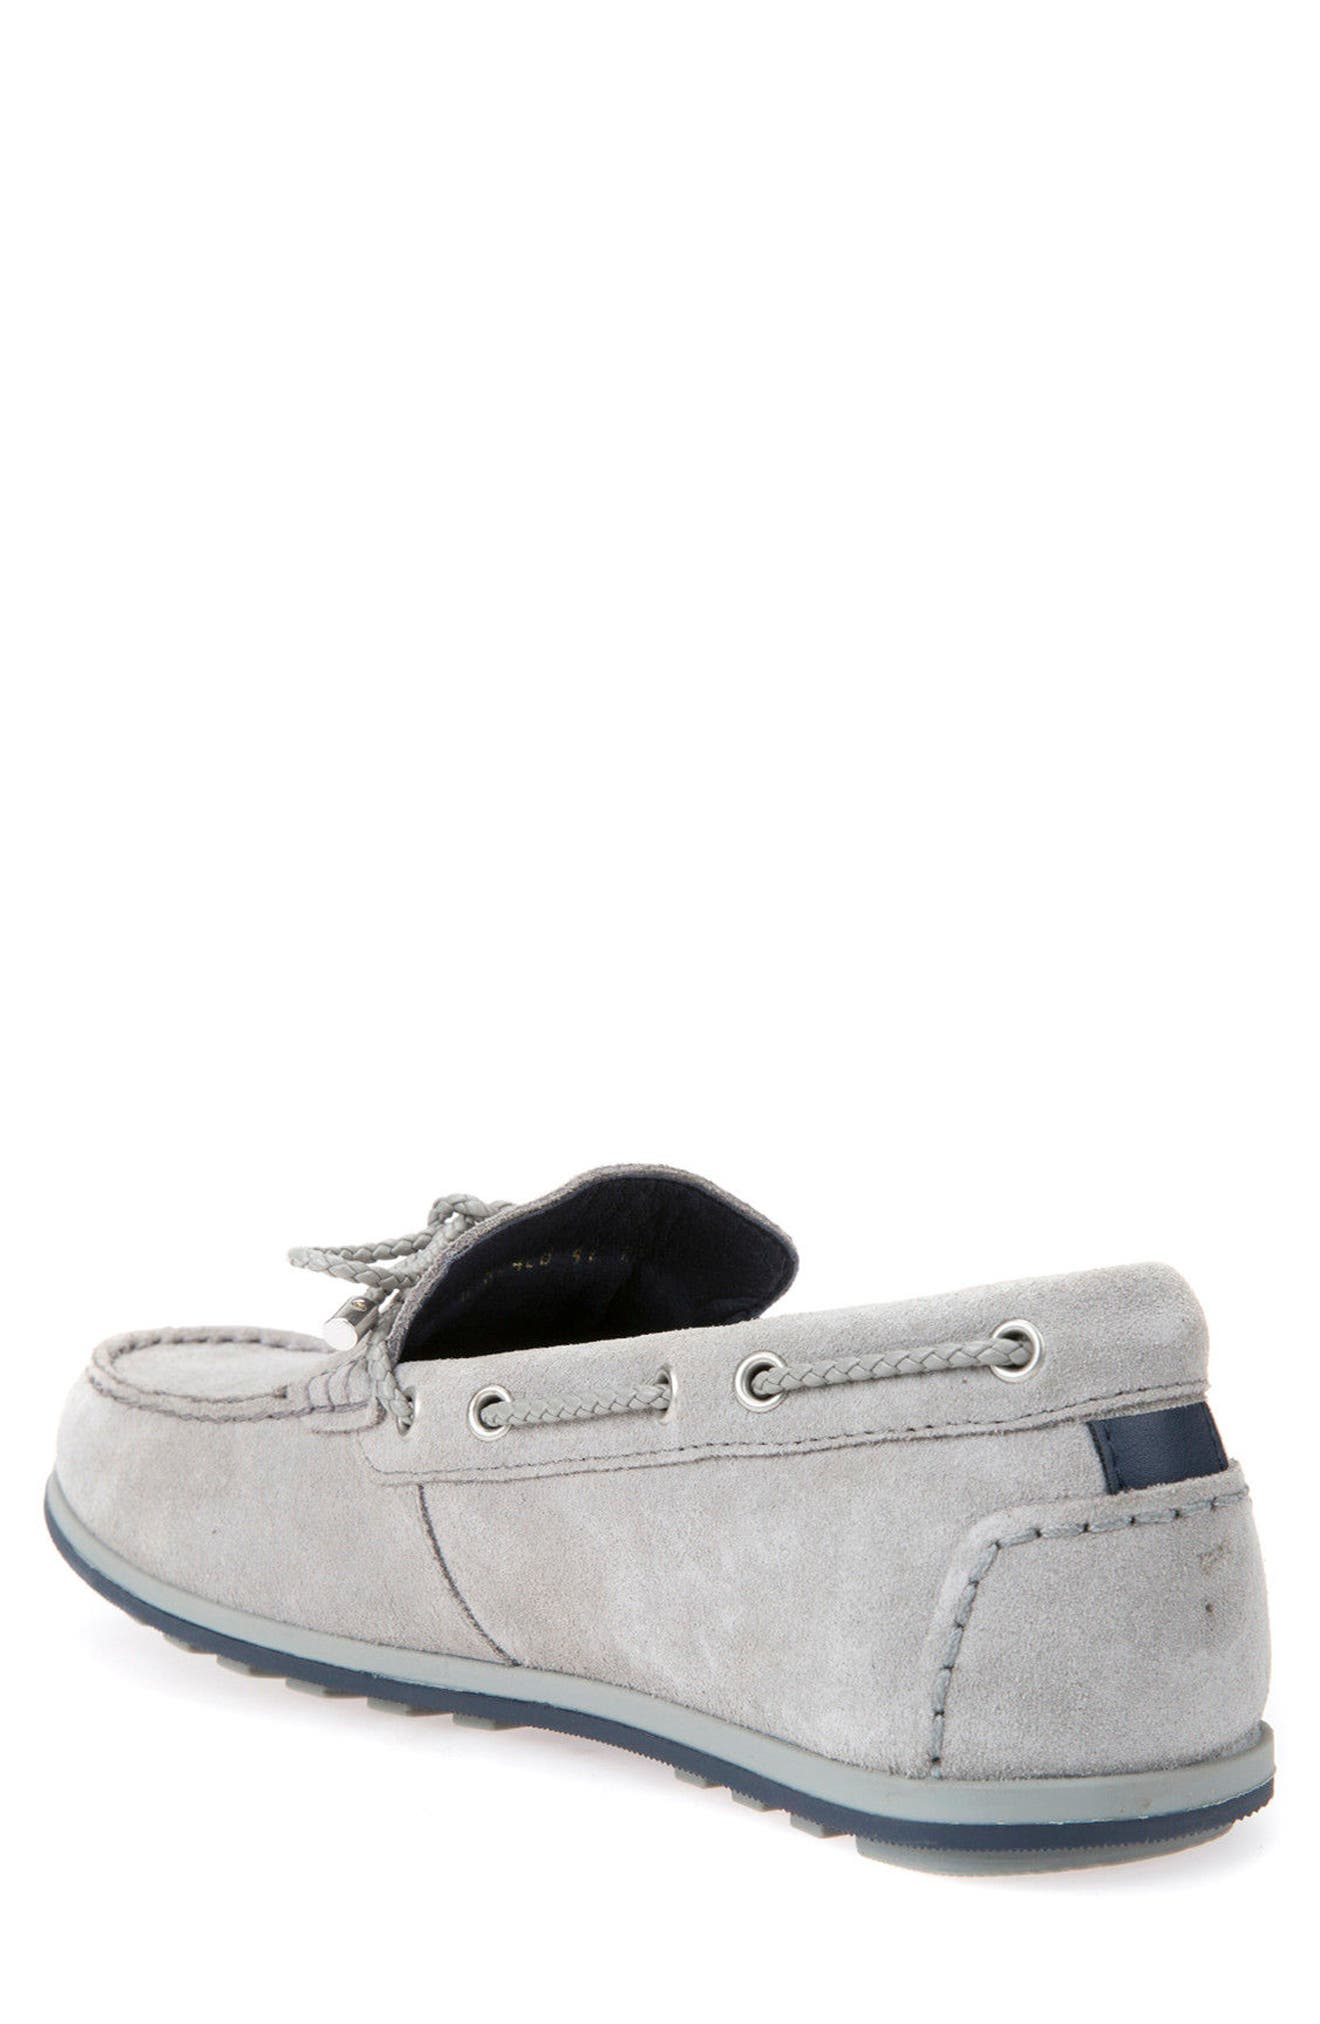 Mirvin 2 Boat Shoe,                             Alternate thumbnail 2, color,                             Stone Suede